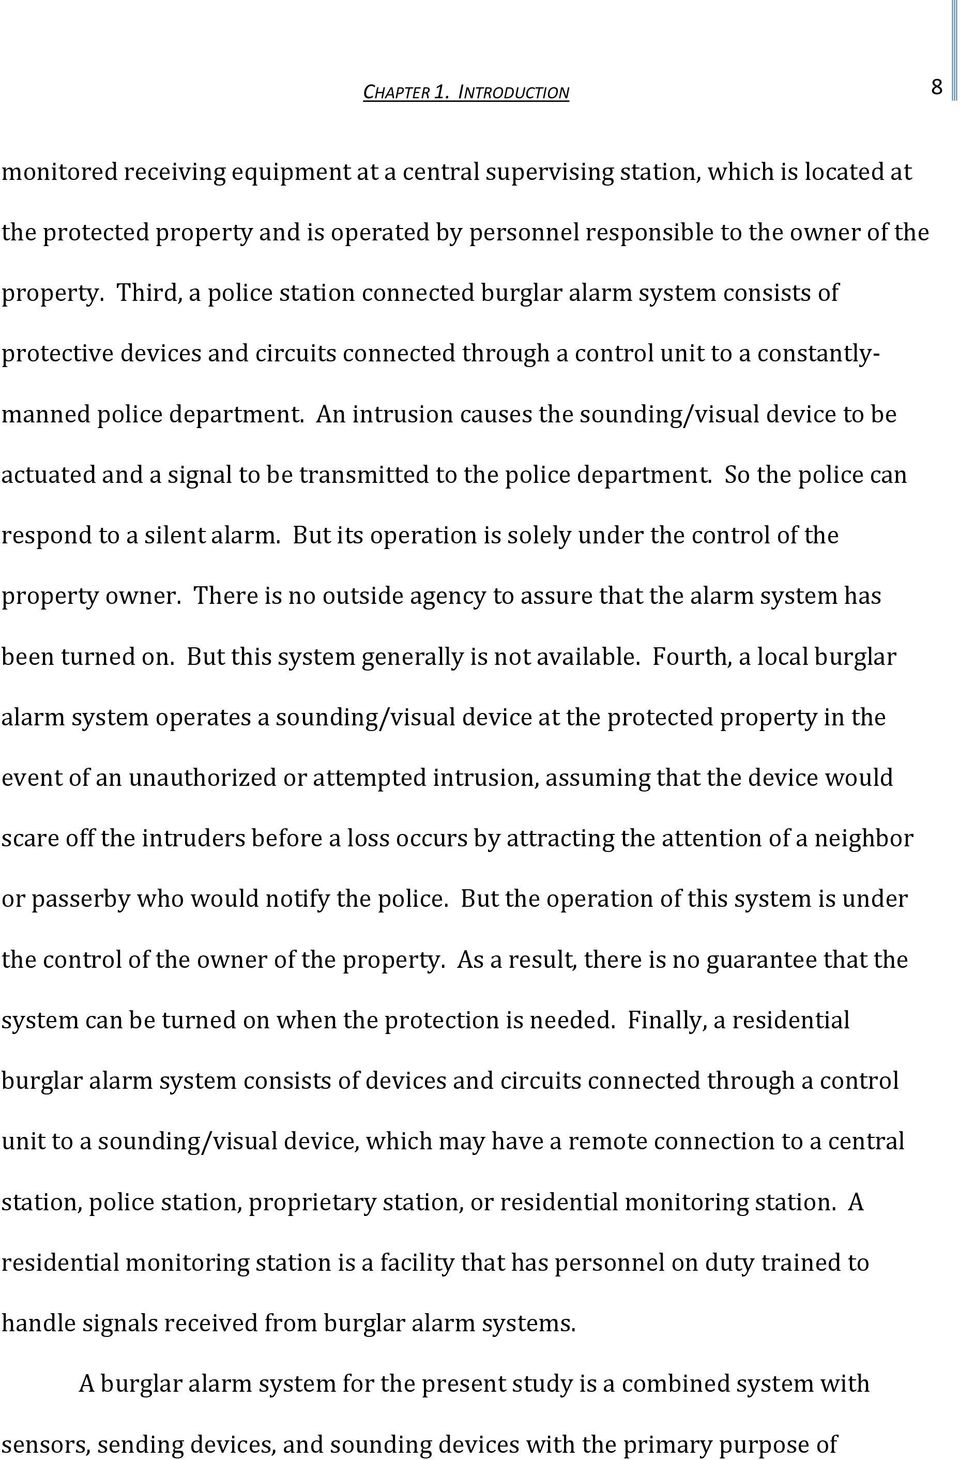 The Impact Of Home Burglar Alarm Systems Pdf Circuits Third A Police Station Connected System Consists Protective Devices And